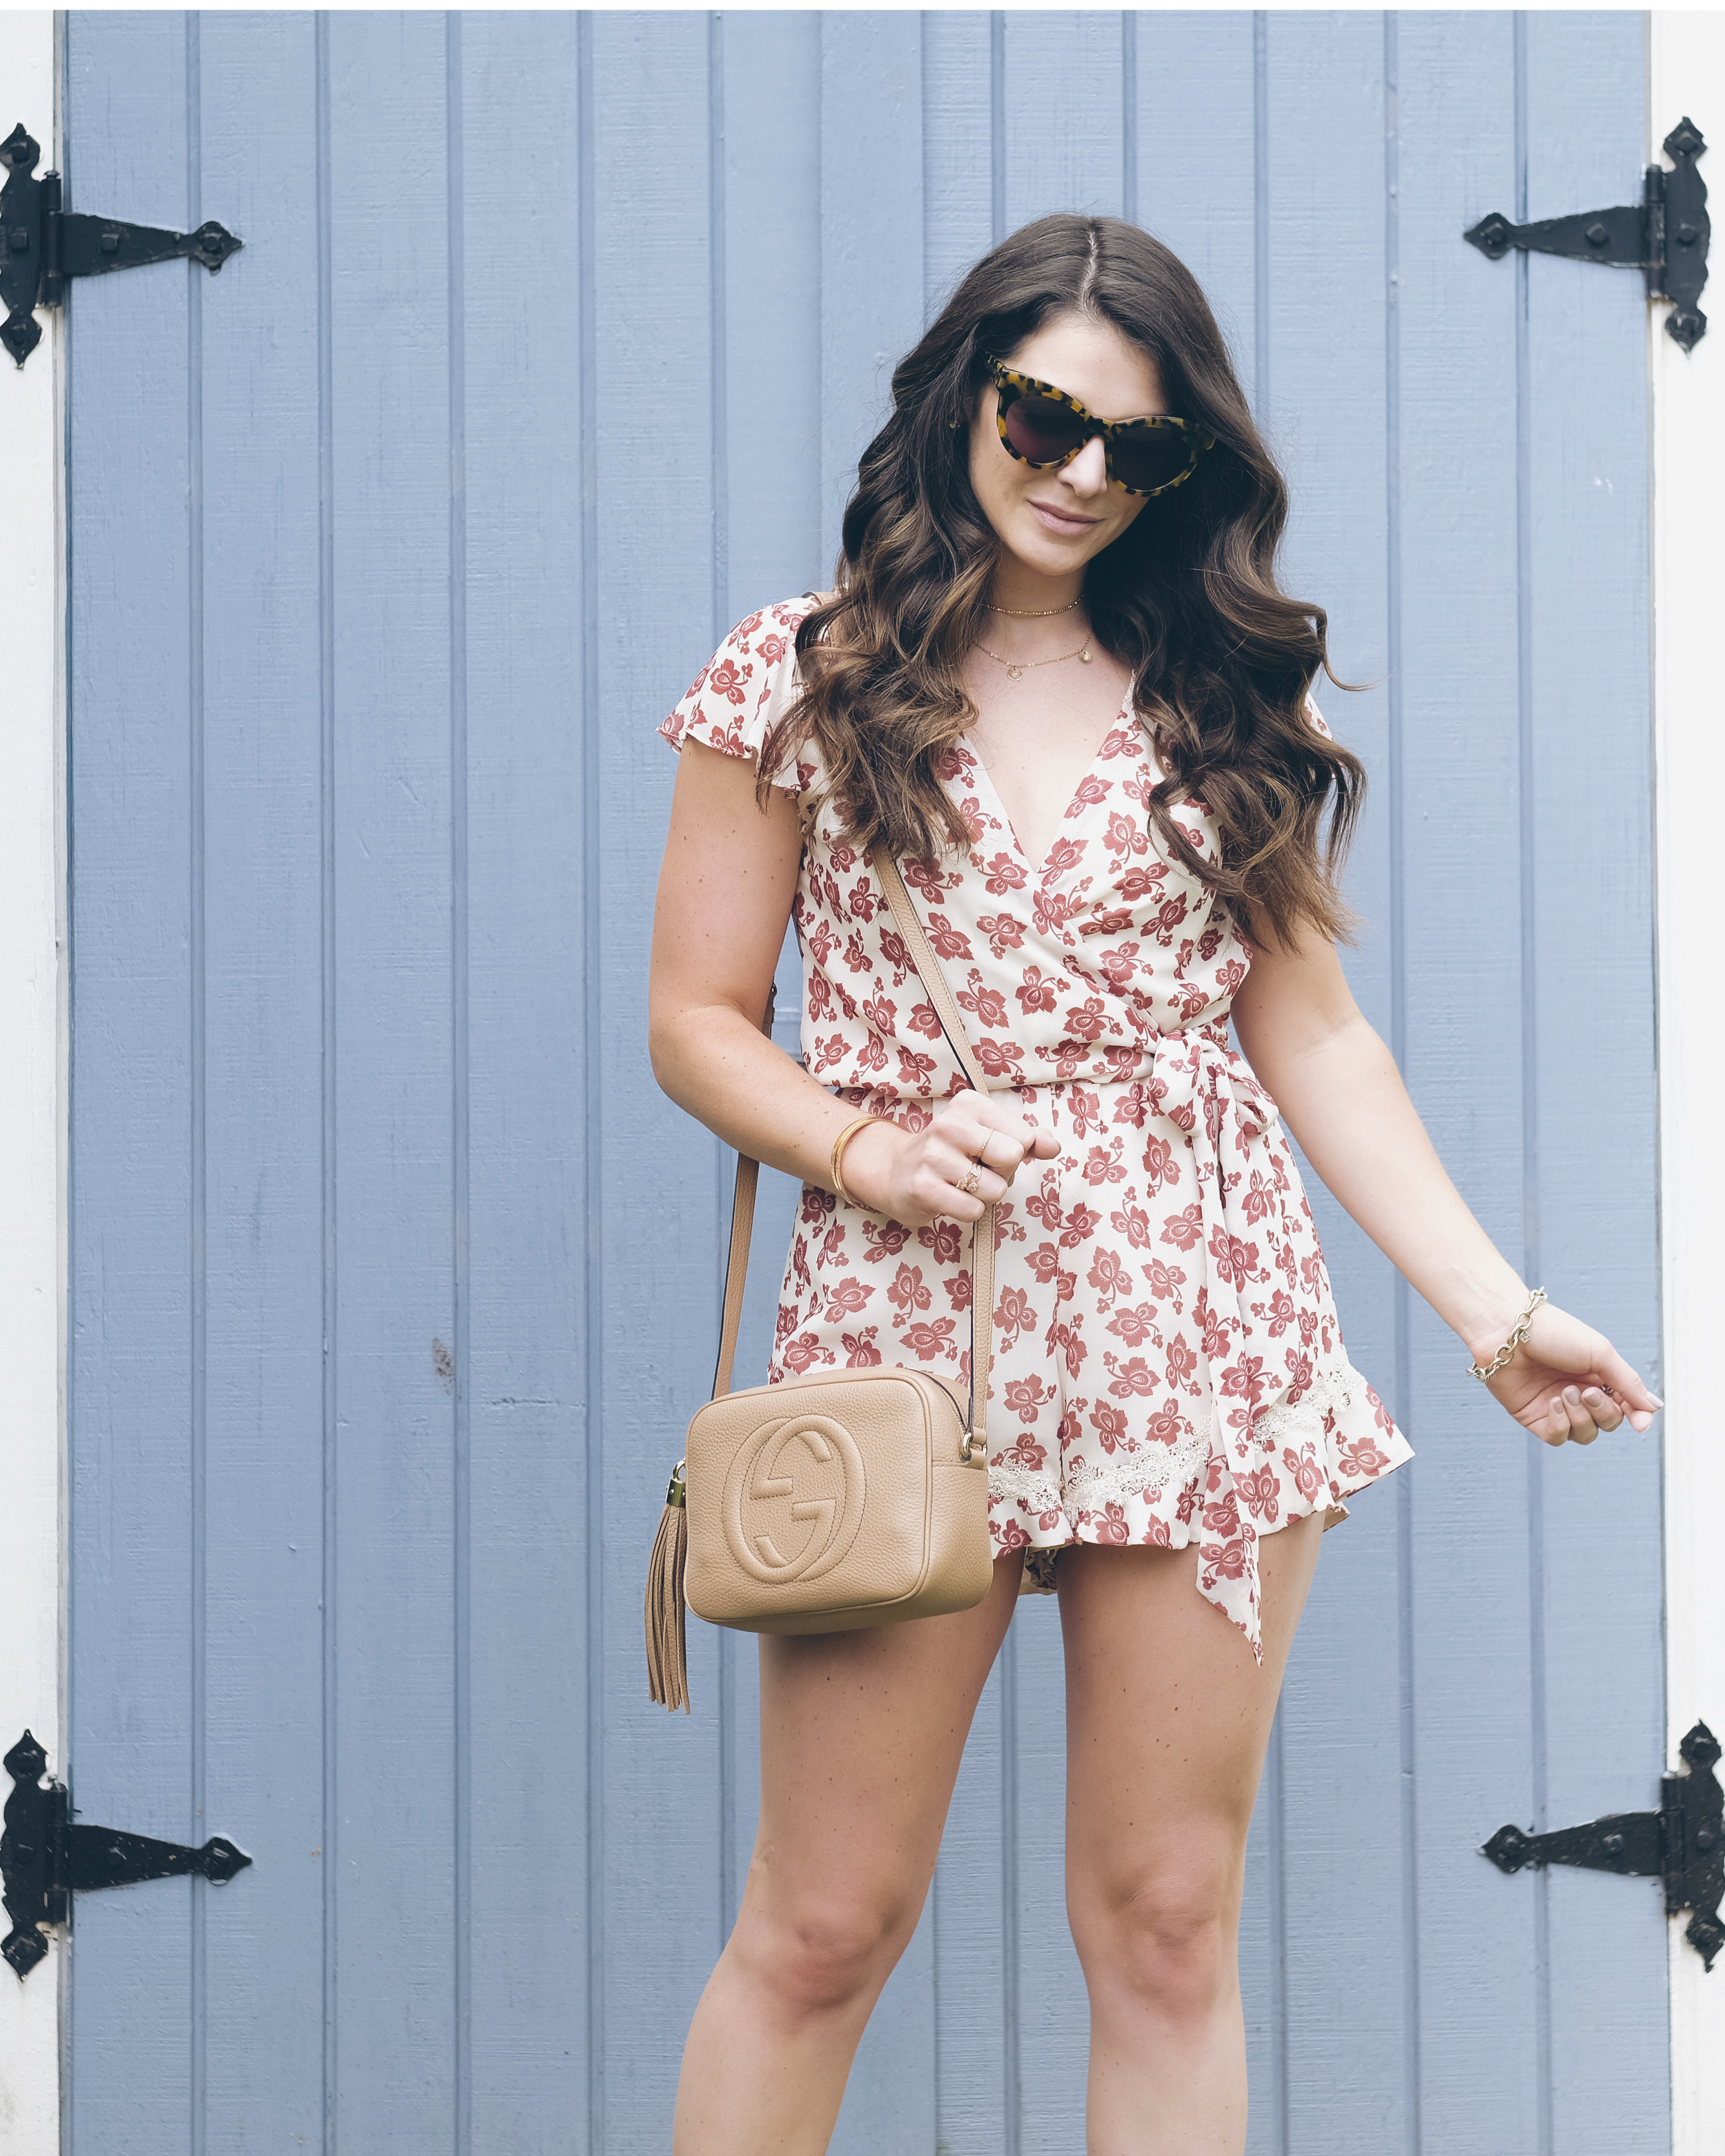 Affordable summer rompers, Gucci soho disco bag, Tularosa Floral Paisley romper